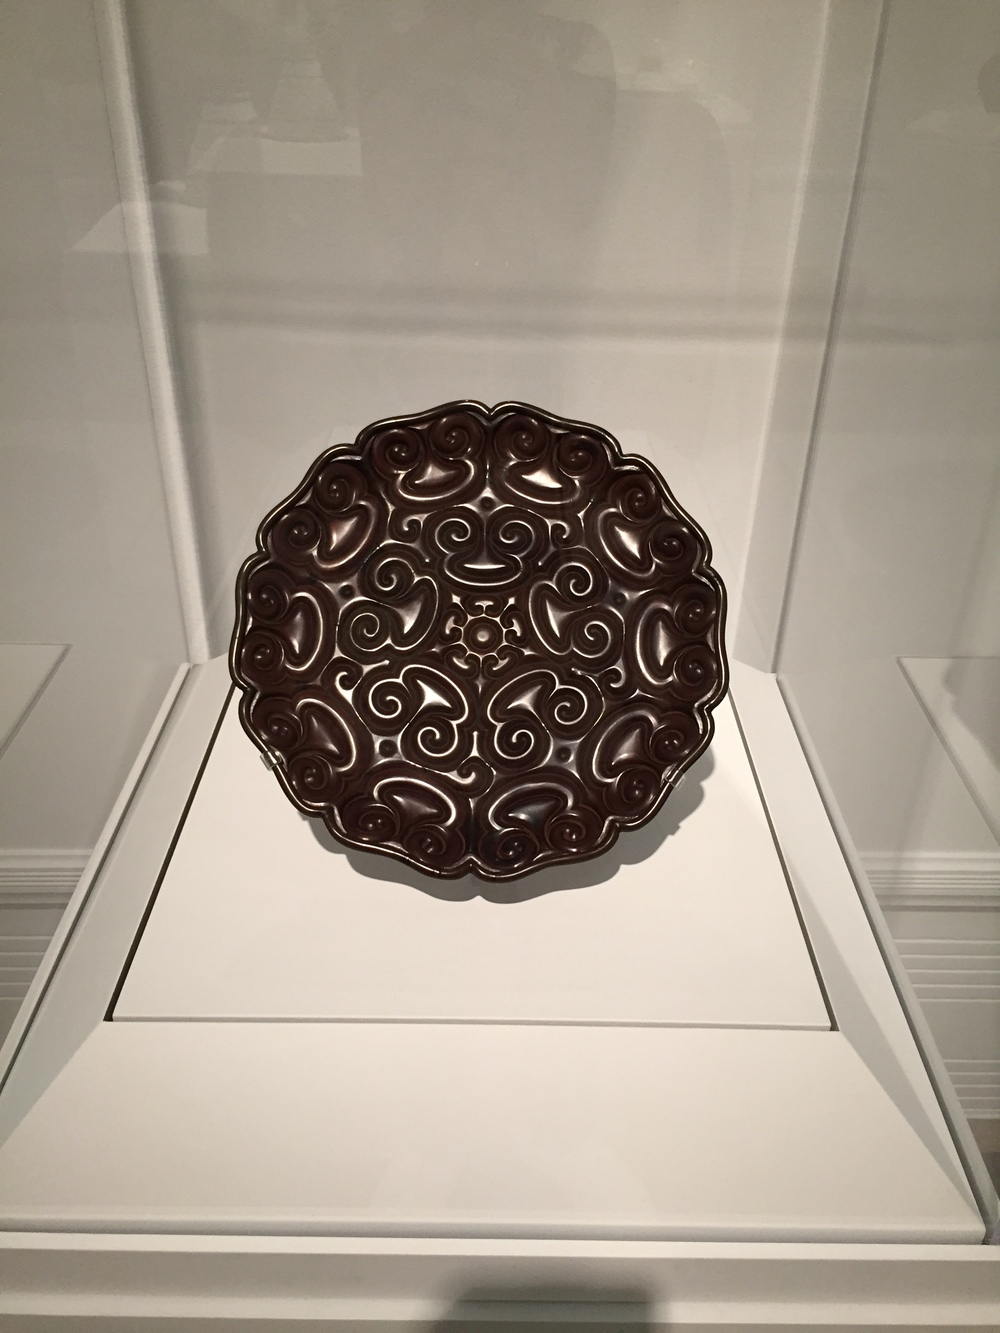 plate from Yuan dynasty (1279-1368)